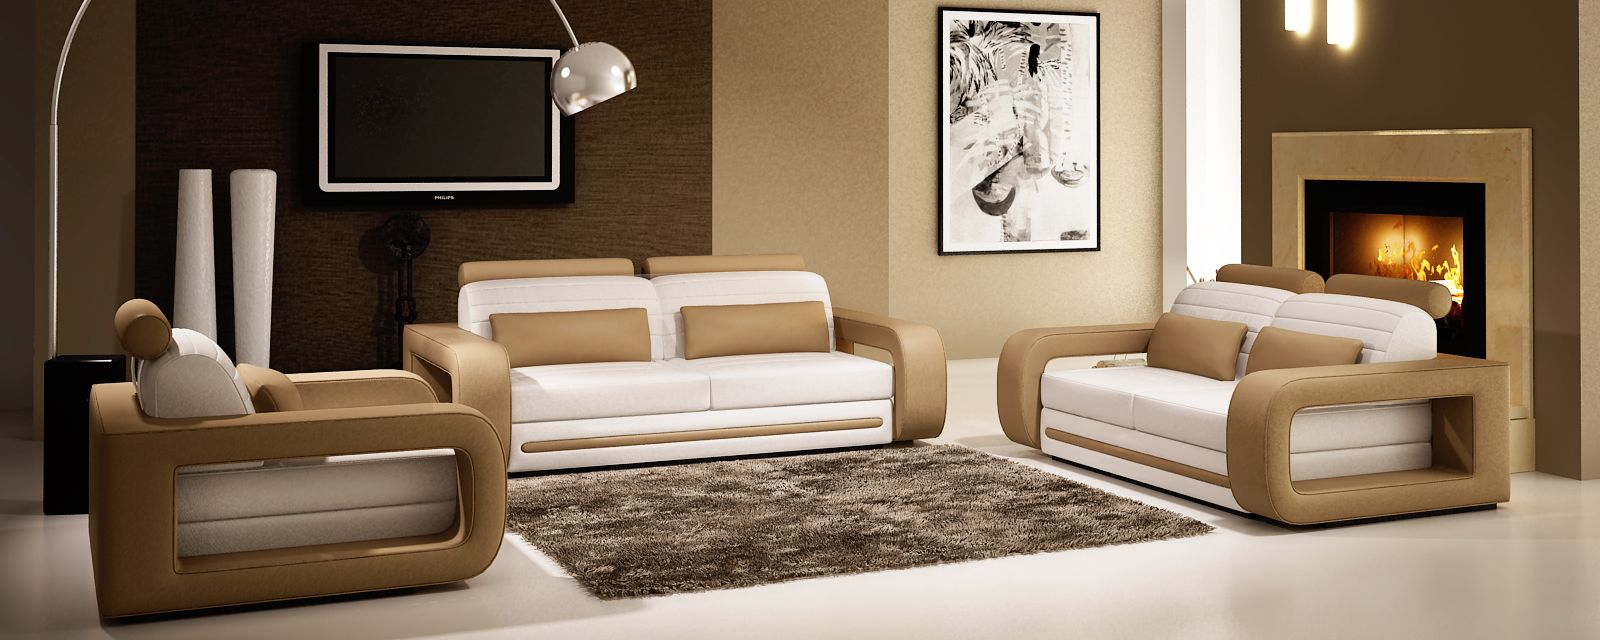 polsterm bel polsterm bel modell 1005bdie m bel aus italien. Black Bedroom Furniture Sets. Home Design Ideas